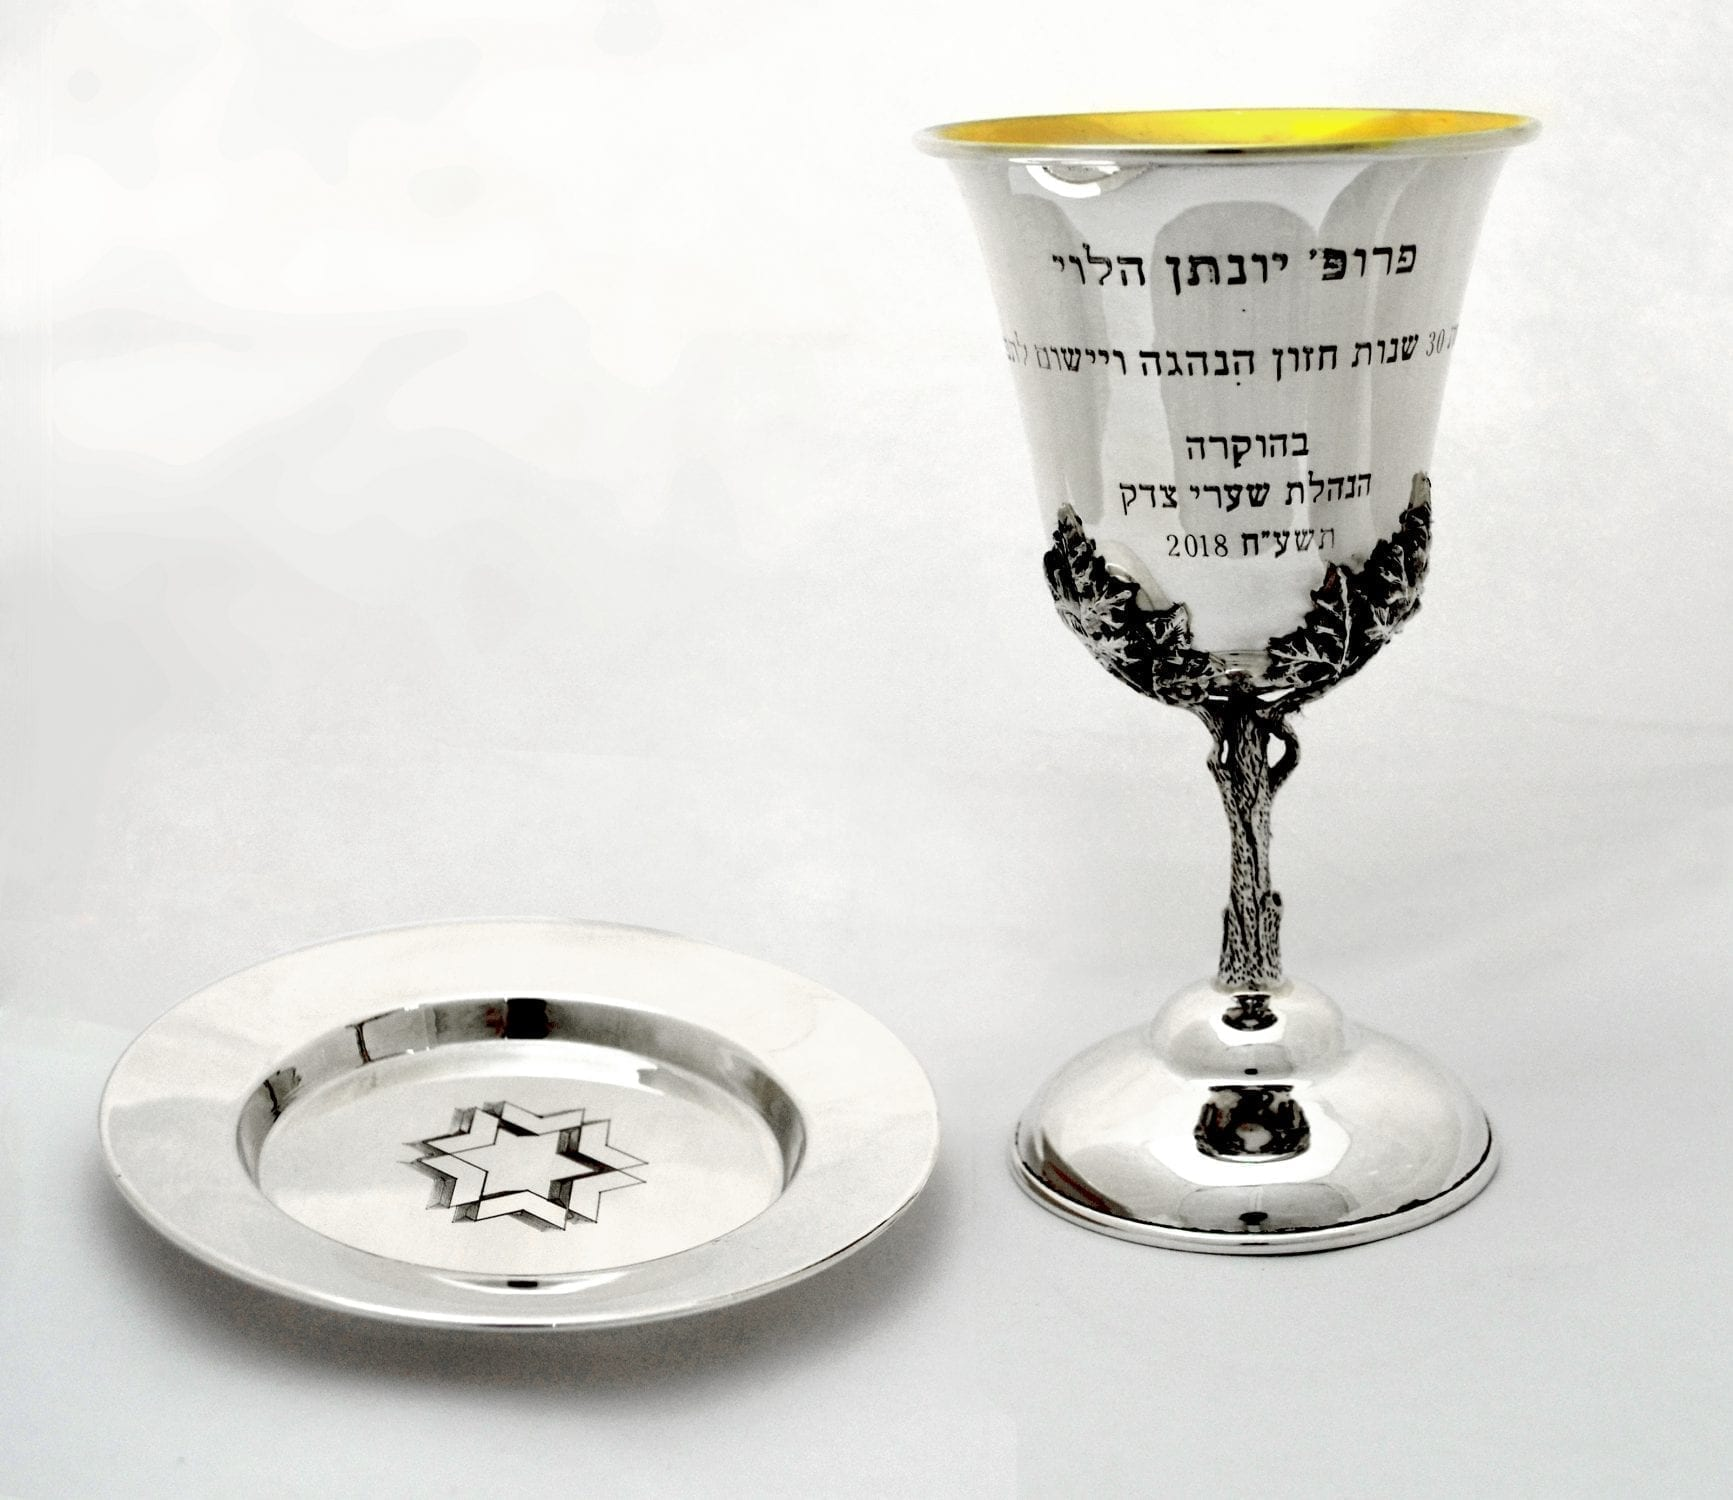 Engraving sterling silver kiddush cup